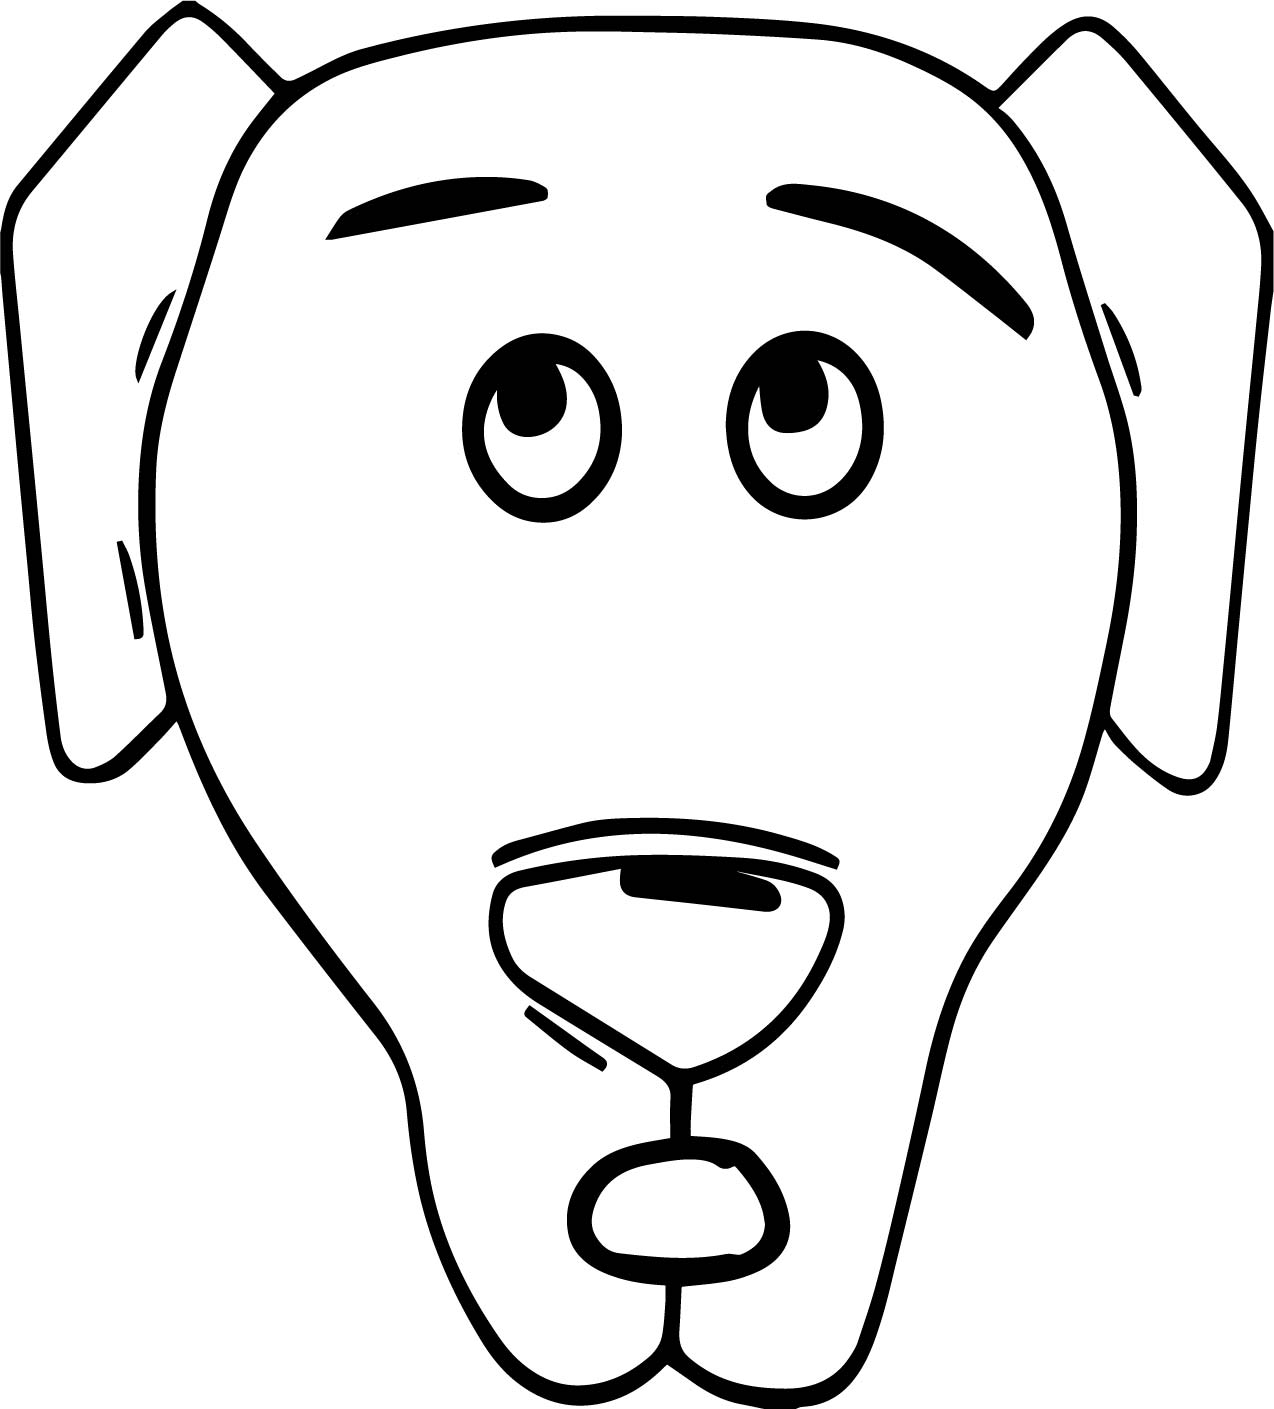 A dog face coloring page for Face coloring pages